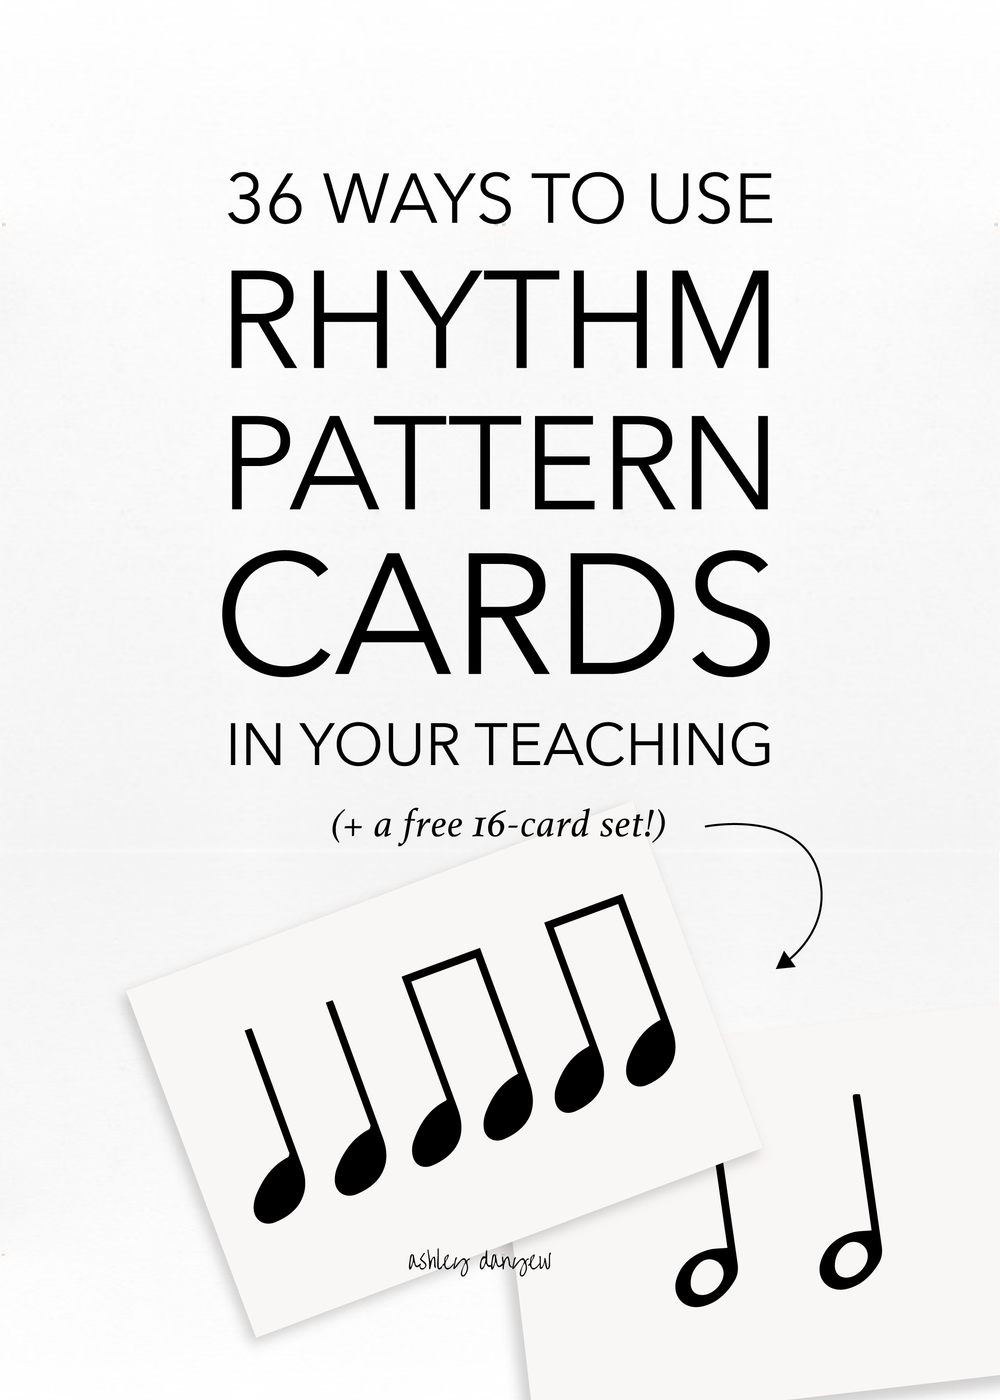 36 Ways to Use Rhythm Pattern Cards in Your Teaching-14.png